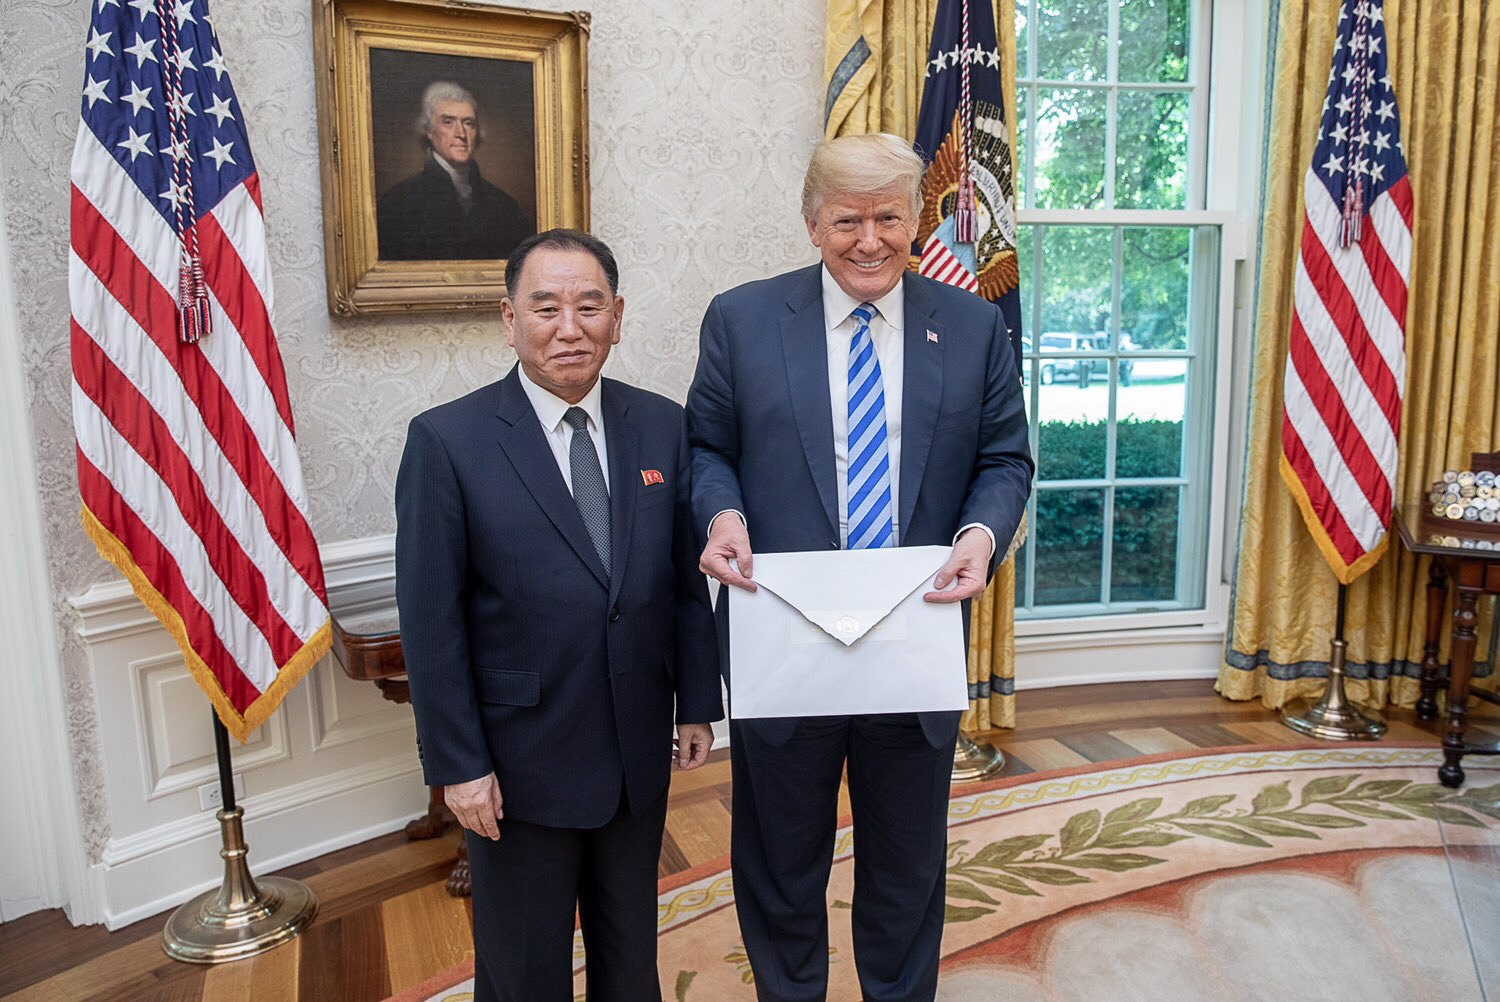 U.S. President Donald Trump is presented with a letter from North Korean Leader Kim Jong Un by Kim's envoy, Kim Yong Chol, in Washington on Friday. | SHEALAH CRAIGHEAD / VIA WHITEHOUSE PHOTOS